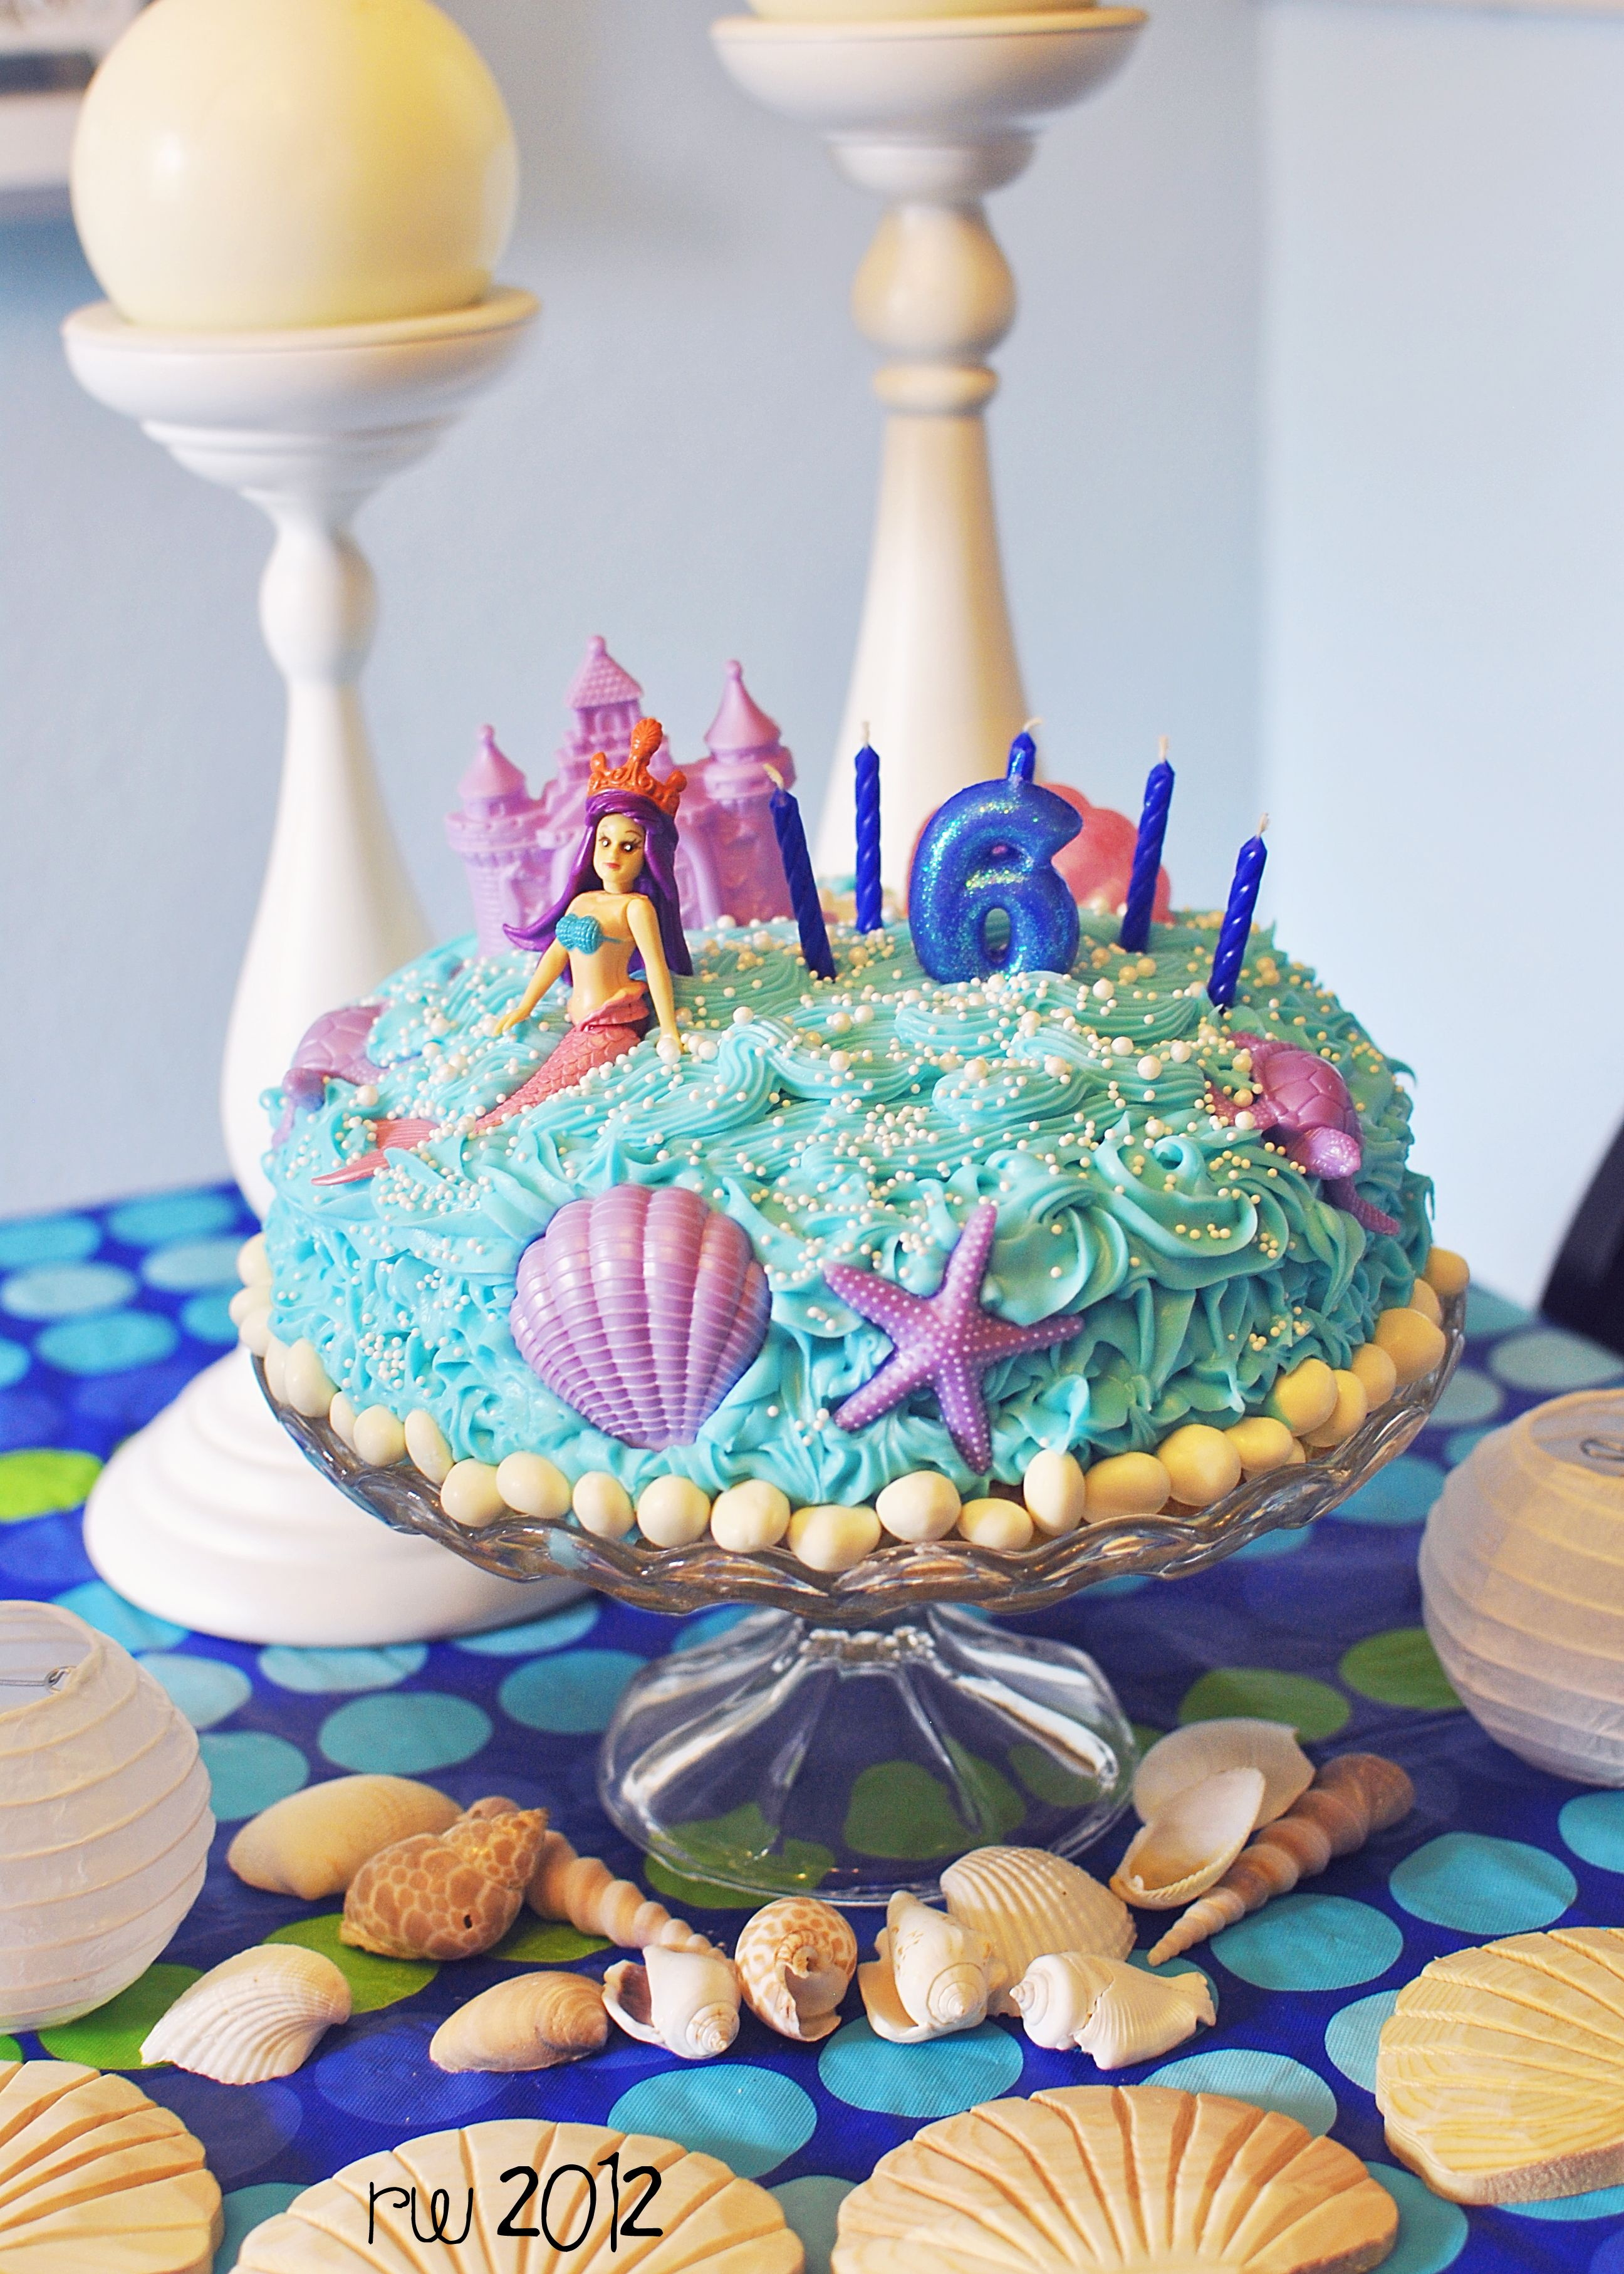 Cake Decorating Dollar Store : mermaid cake. easy peasy. decorations from the dollar ...